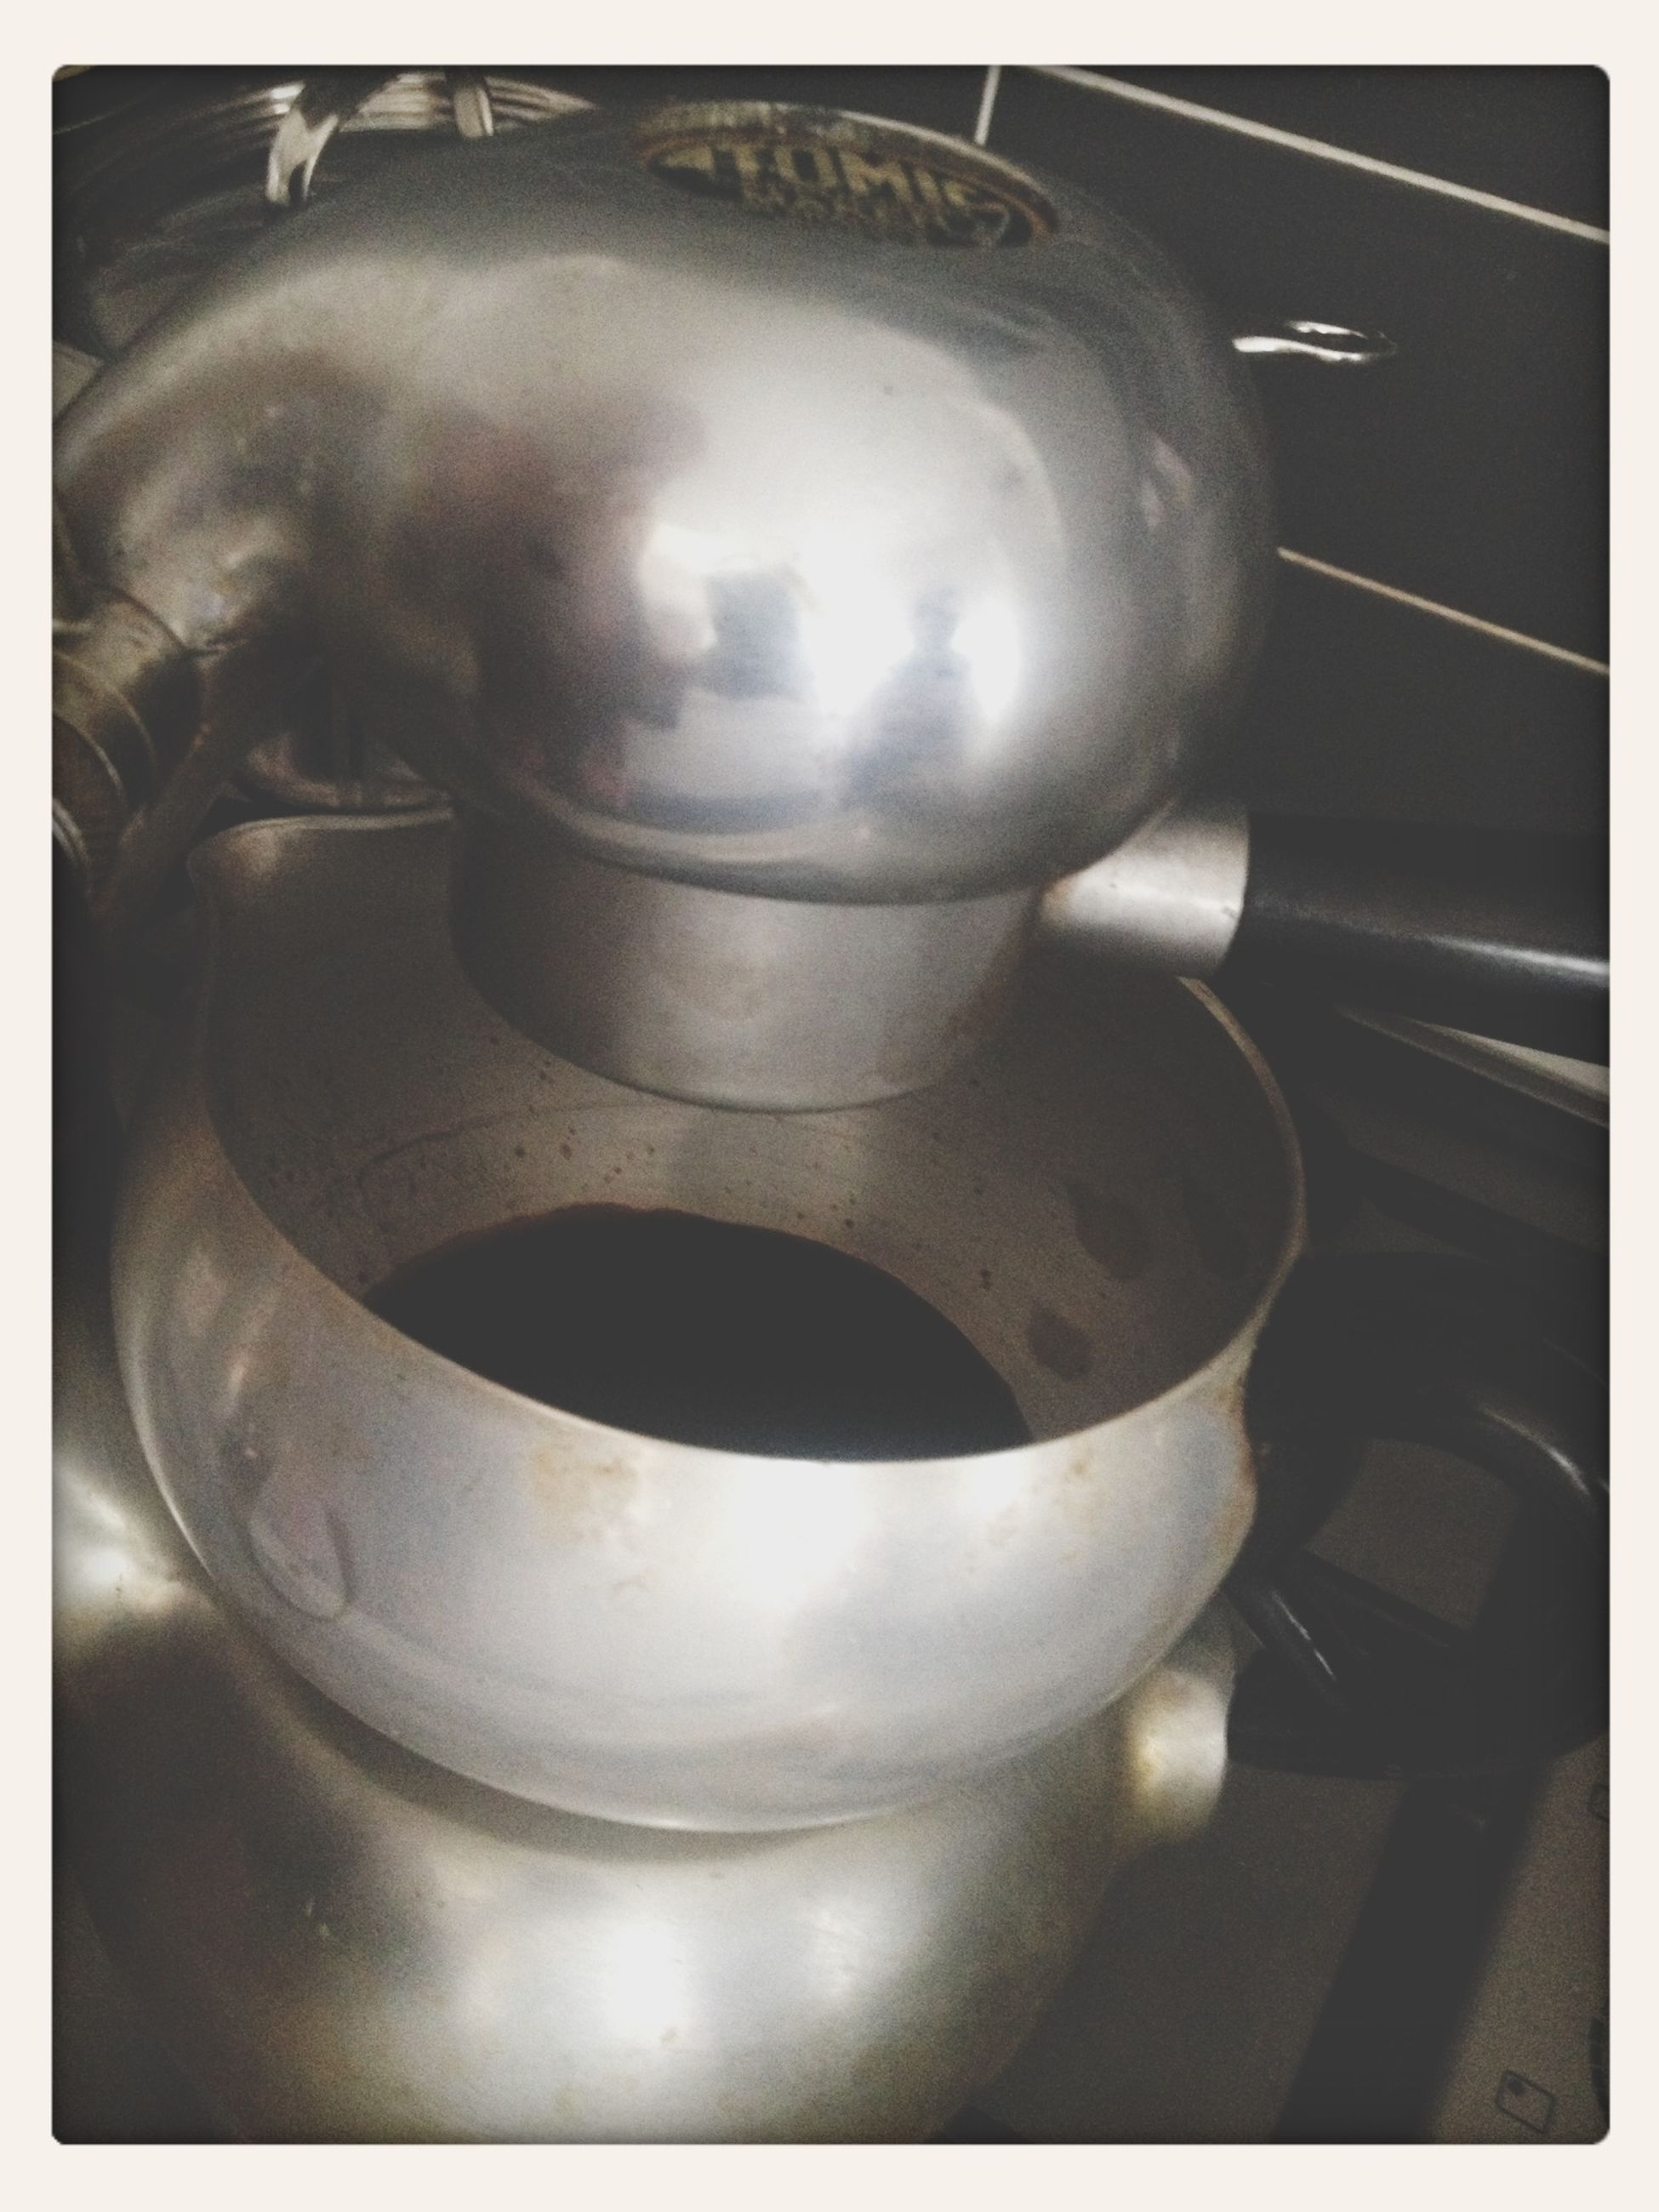 indoors, transfer print, still life, close-up, auto post production filter, food and drink, table, metal, high angle view, spoon, container, kitchen utensil, no people, drink, metallic, refreshment, domestic kitchen, glass - material, coffee cup, equipment